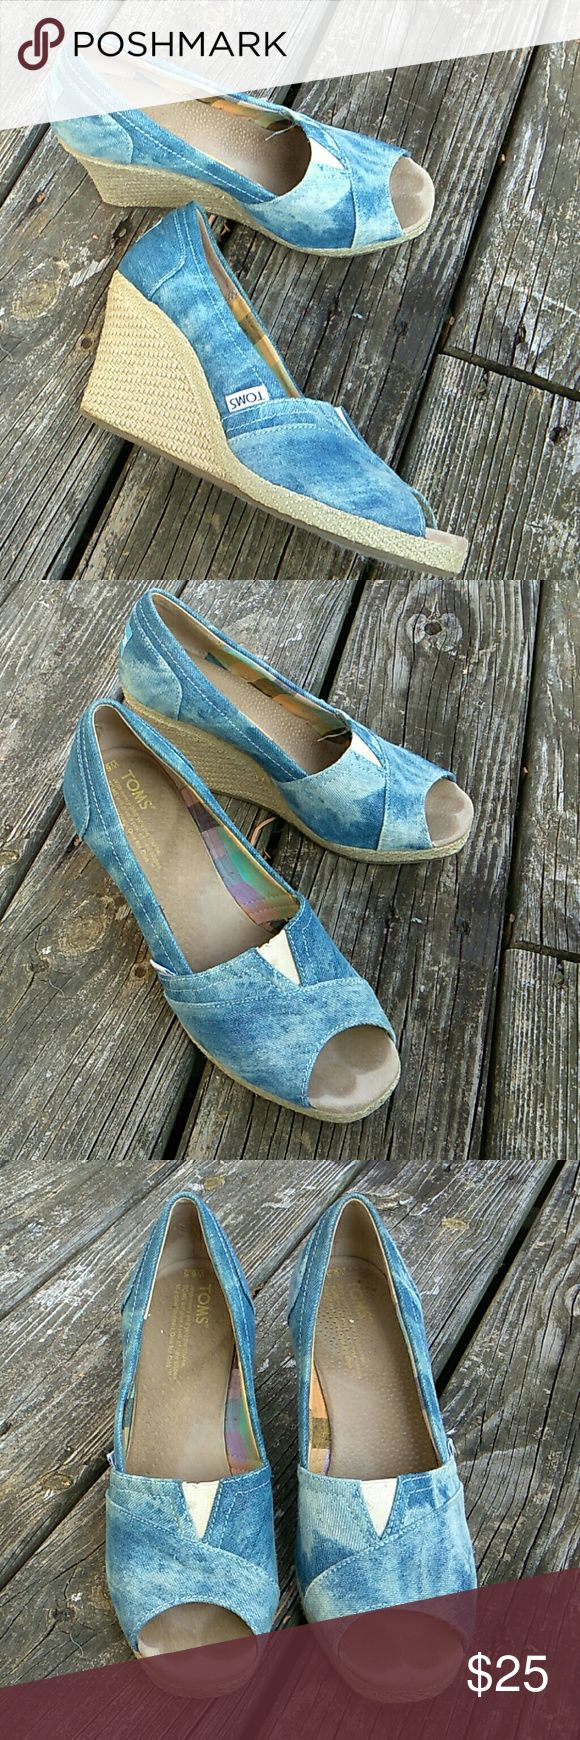 Toms Sz 6.5 Denim Wedge Espadrilles Peep Toe V good condition with footprints on insoles as shown. Otherwise v clean uppers, edges, and soles. Toms Shoes Wedges